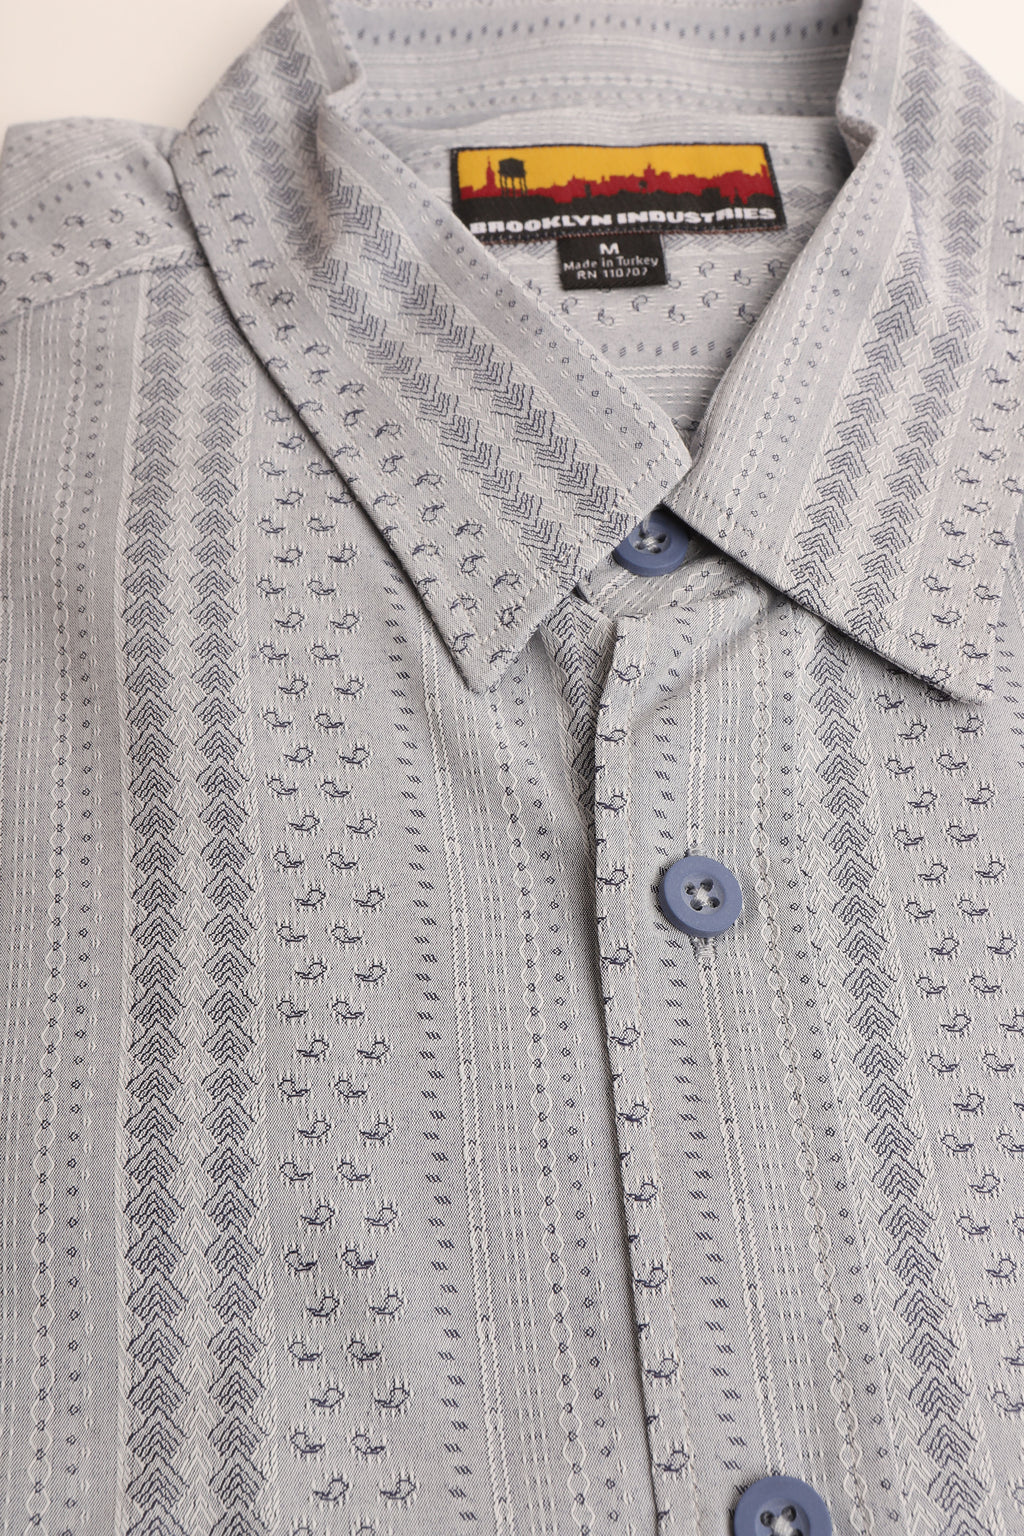 FOLDED SHIRT TO SHOW DETAIL ON GREY MIXED WOVEN SHIRT